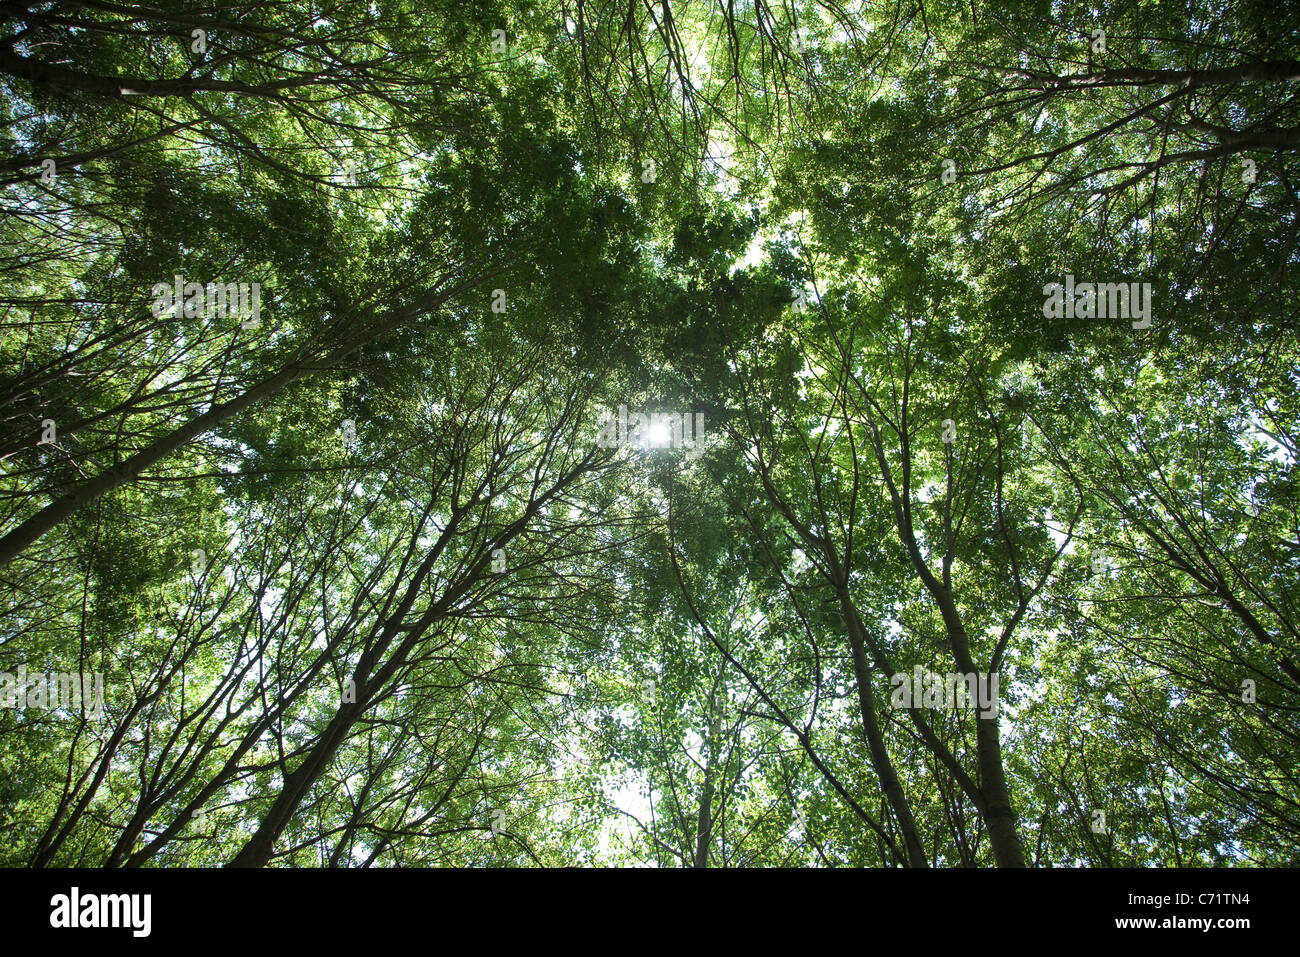 Tree canopy, low angle view - Stock Image